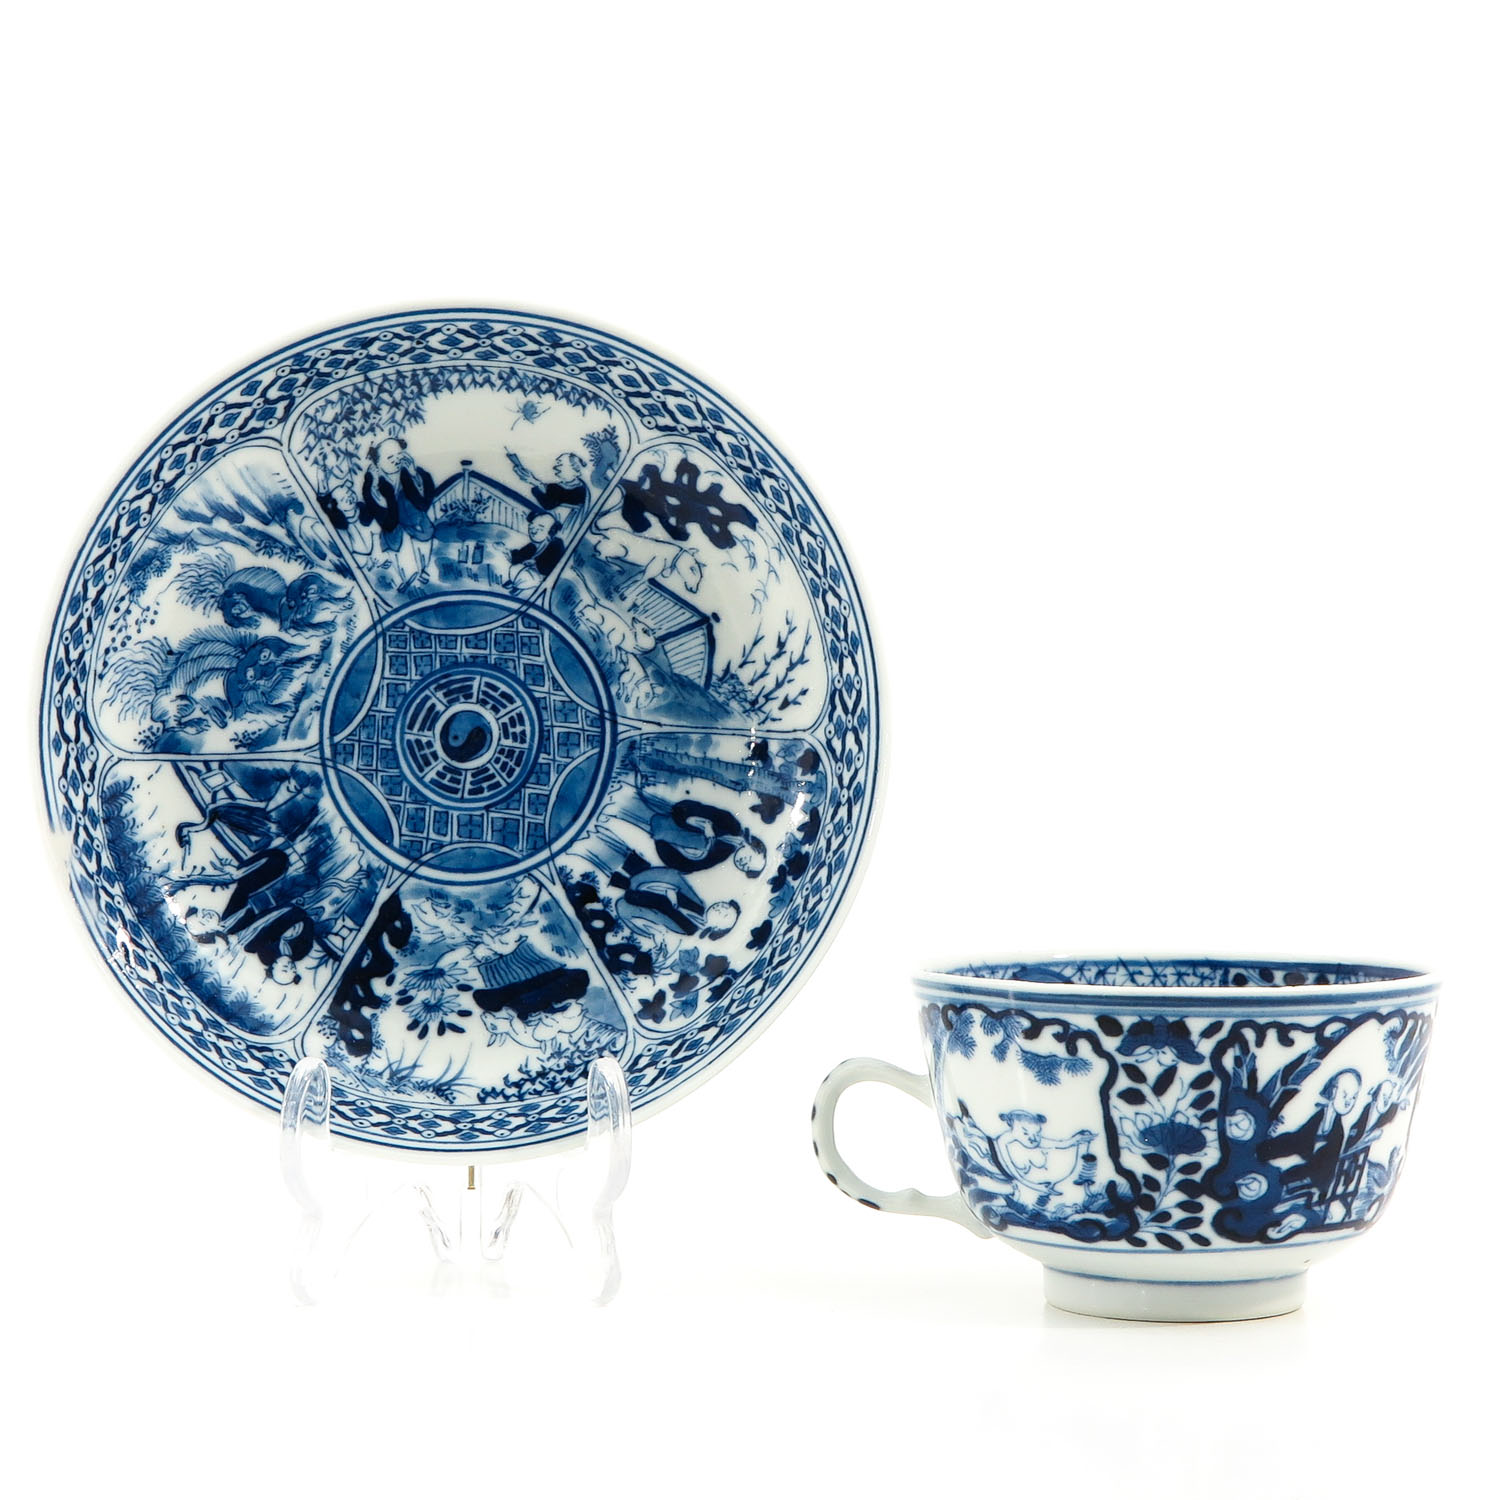 A Blue and White Cup and Saucer - Image 3 of 9